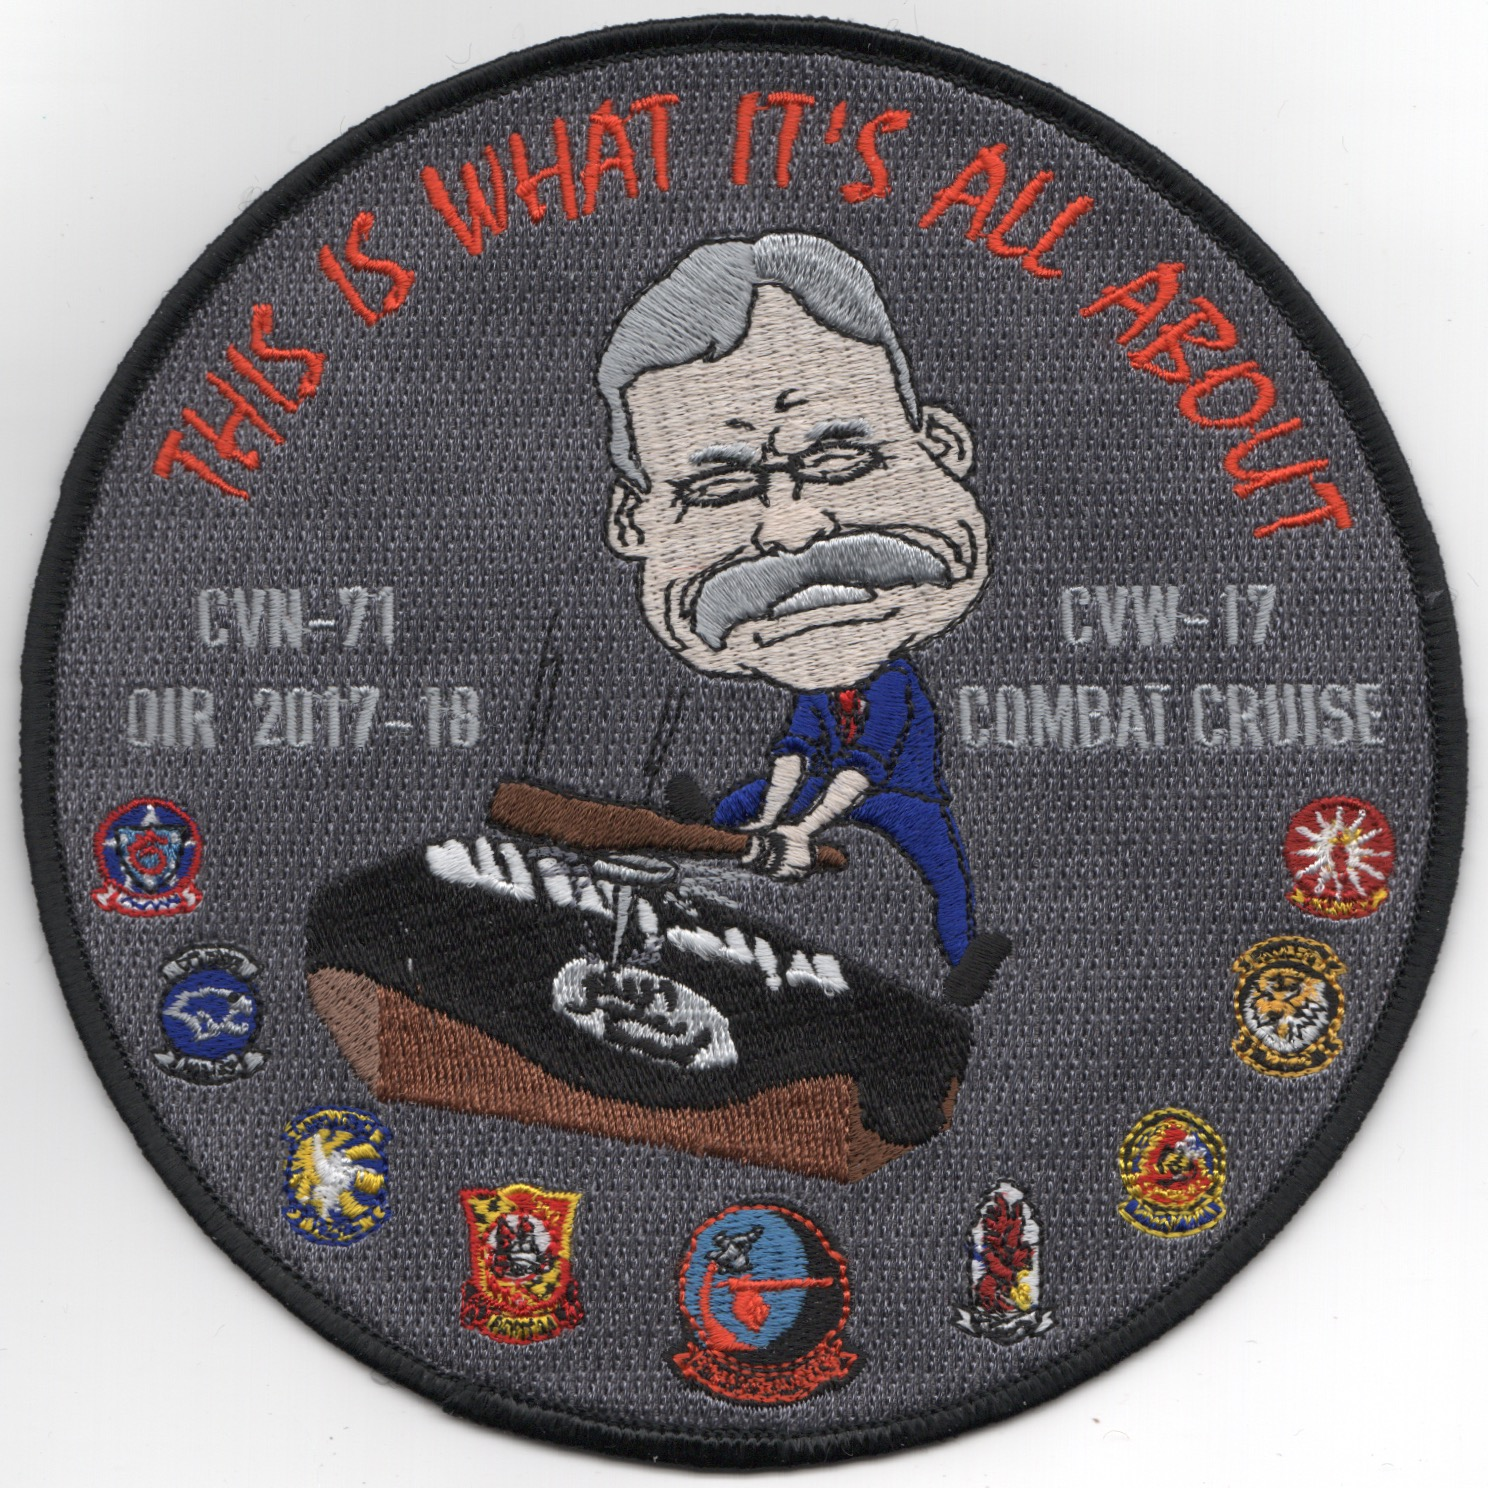 VFA-94 2017 OIR 'All About' Patch (Large)